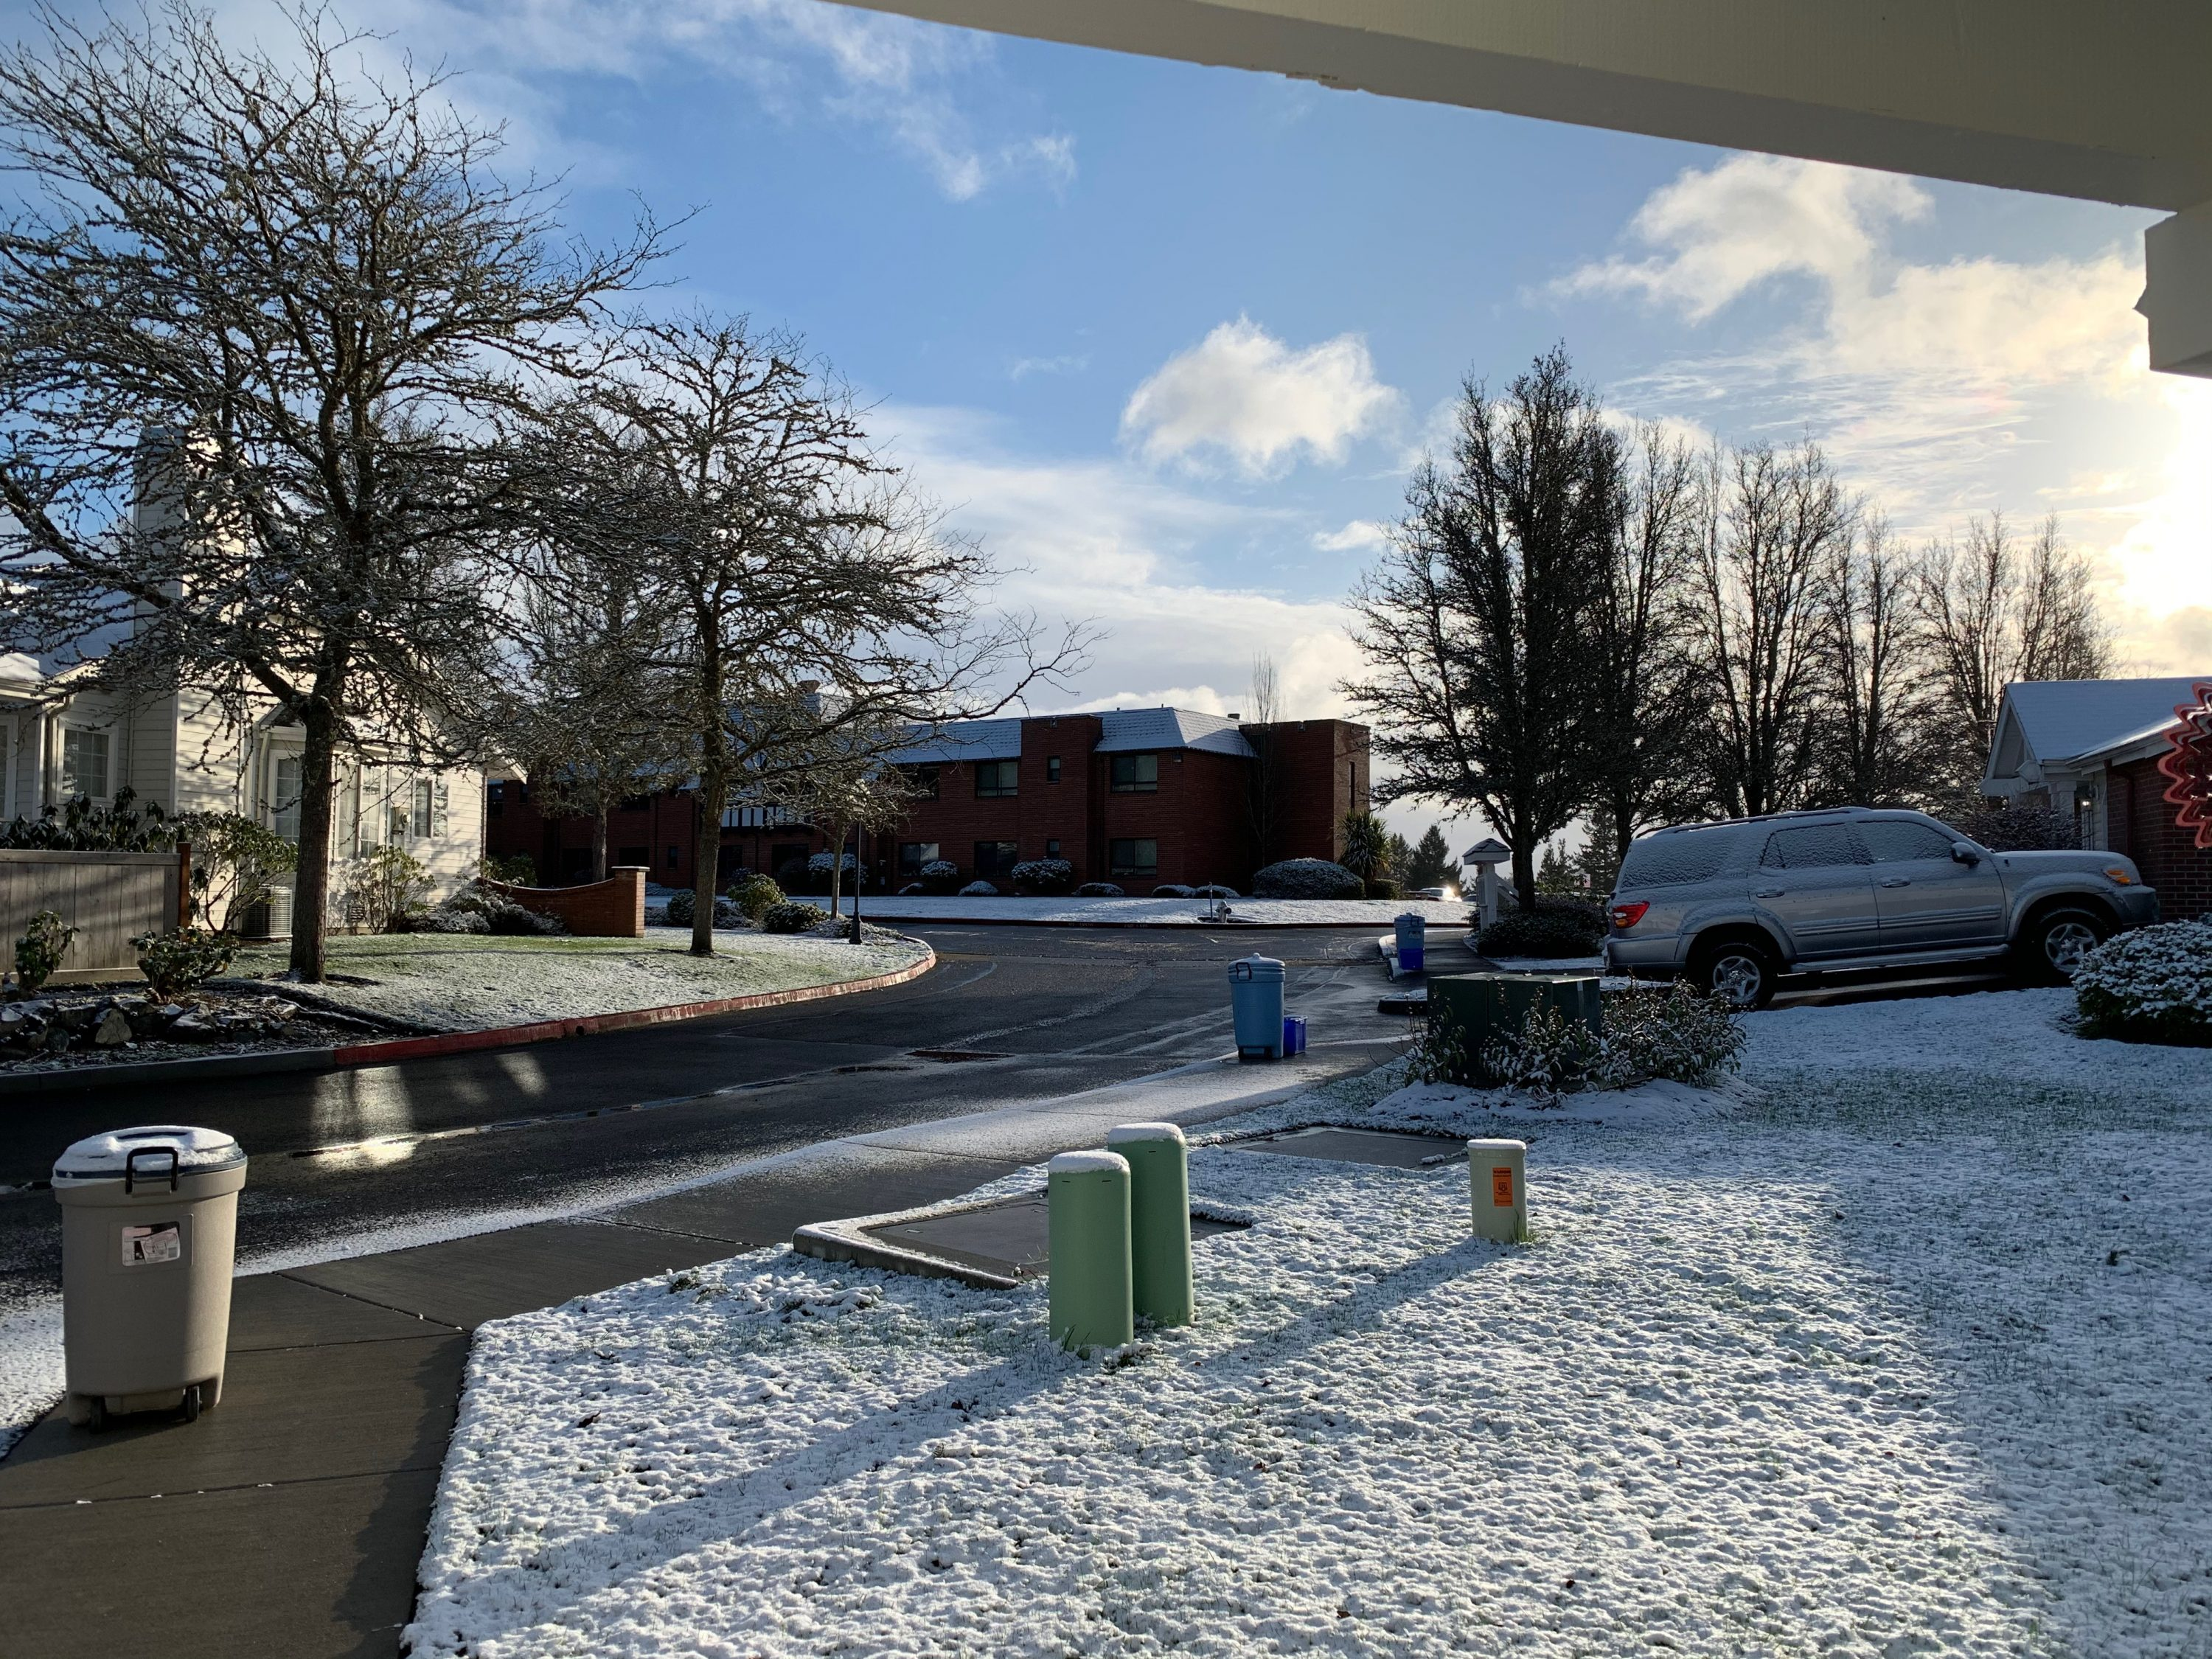 about 1/2 inch of snow, Tacoma, Washington, USA, January 14, 2020